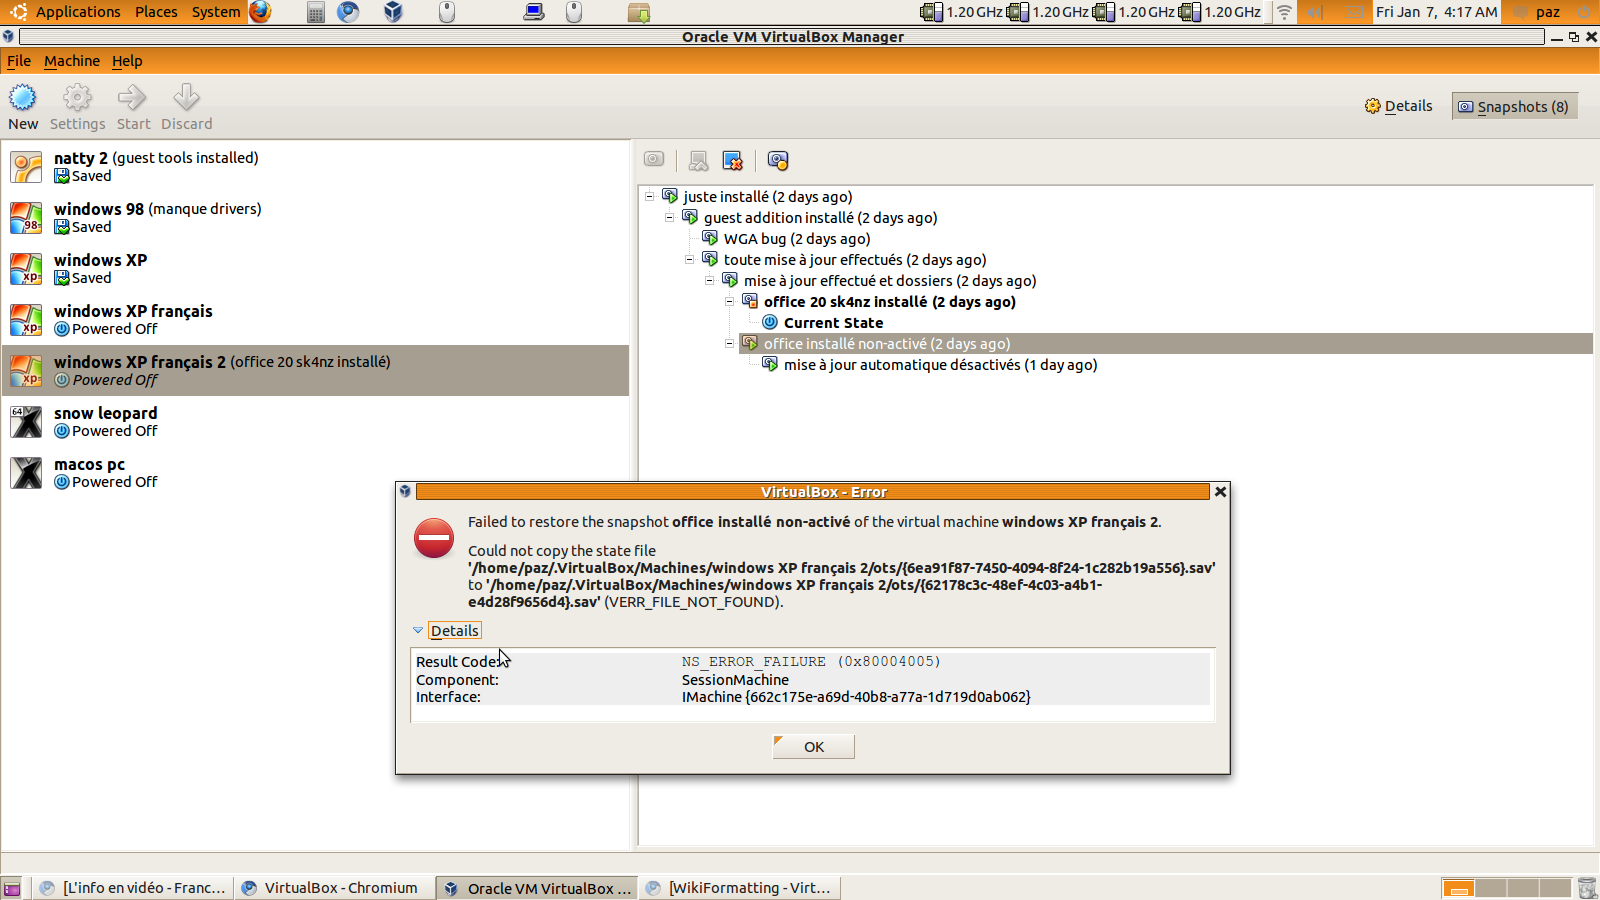 8024 (virtualbox doesn't found files for restore snapshots => Fixed